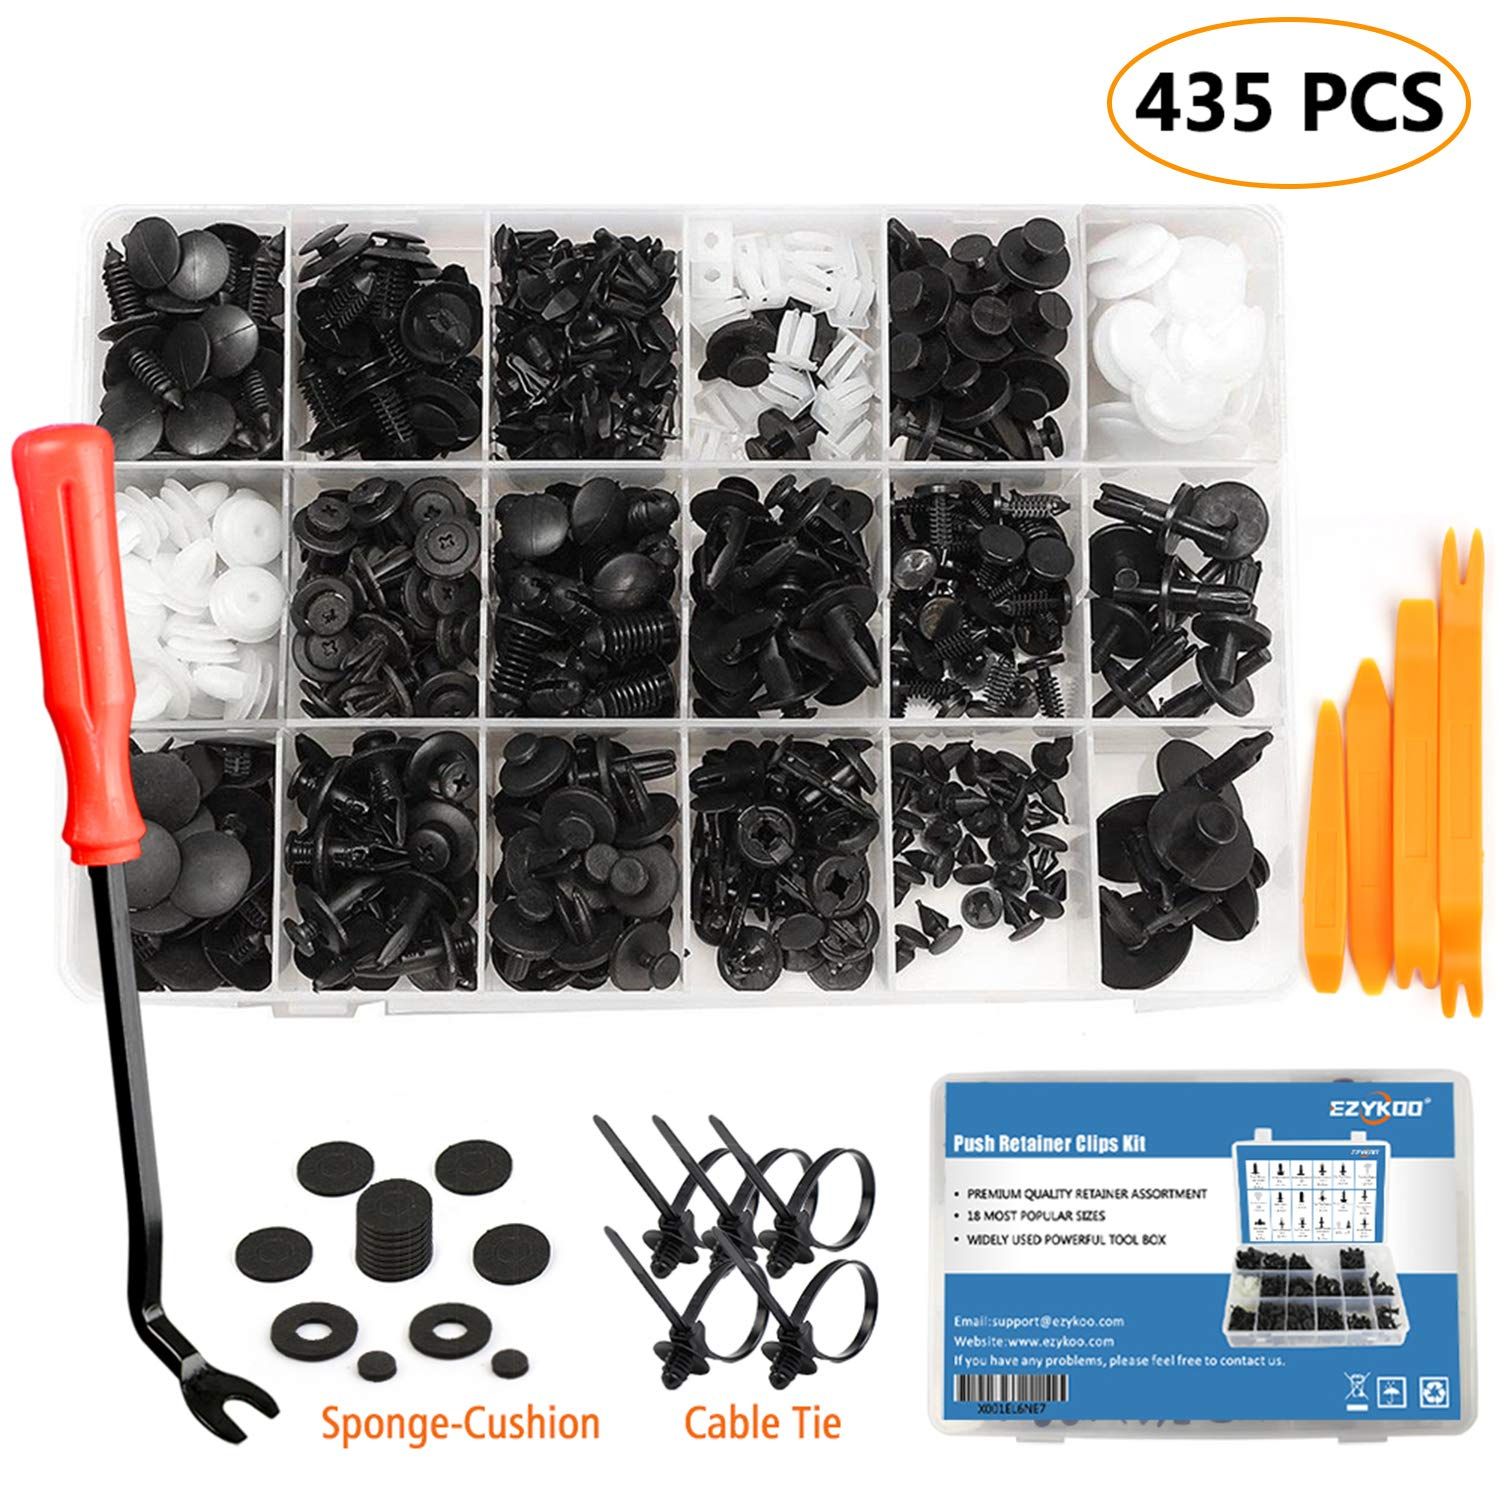 EZYKOO 435 Pcs Car Retainer Clips & Plastic Fasteners Kit - 19 Most Popular Sizes Auto Push Pin Rivets Set -Door Trim Panel Clips for GM Ford Toyota Honda Chrysler